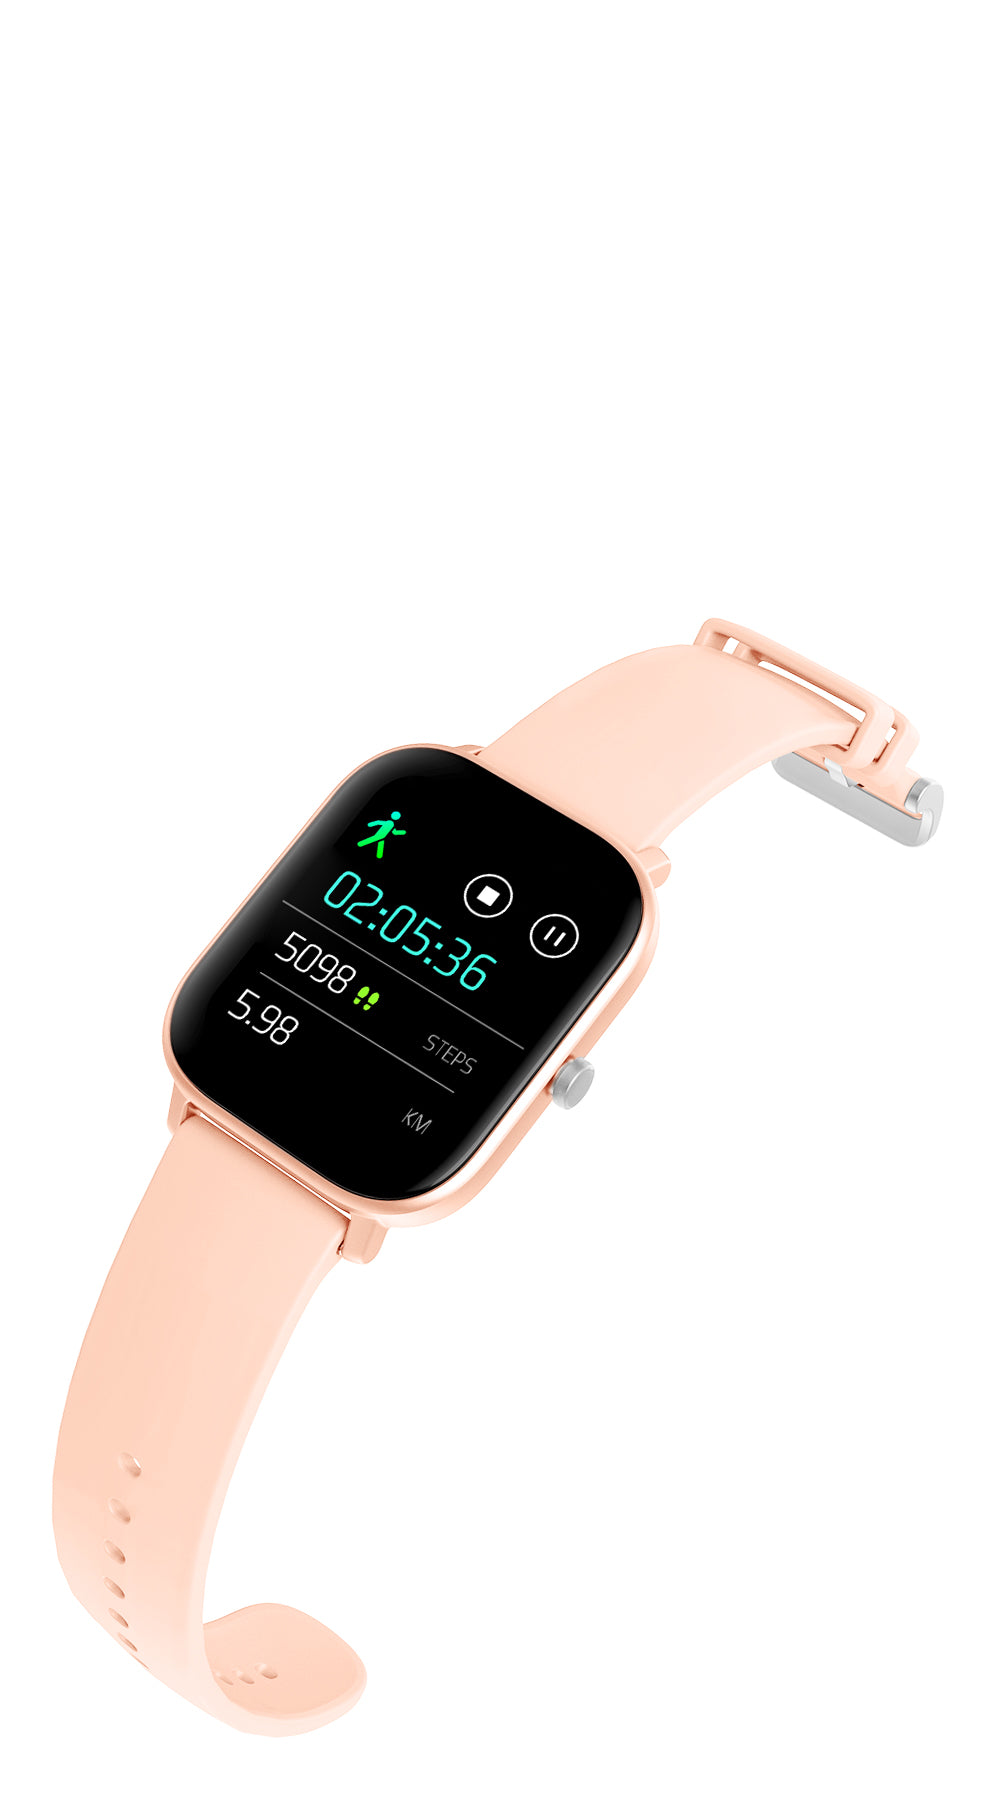 COLMI P8 Smart watch Made for Fitness - mobile